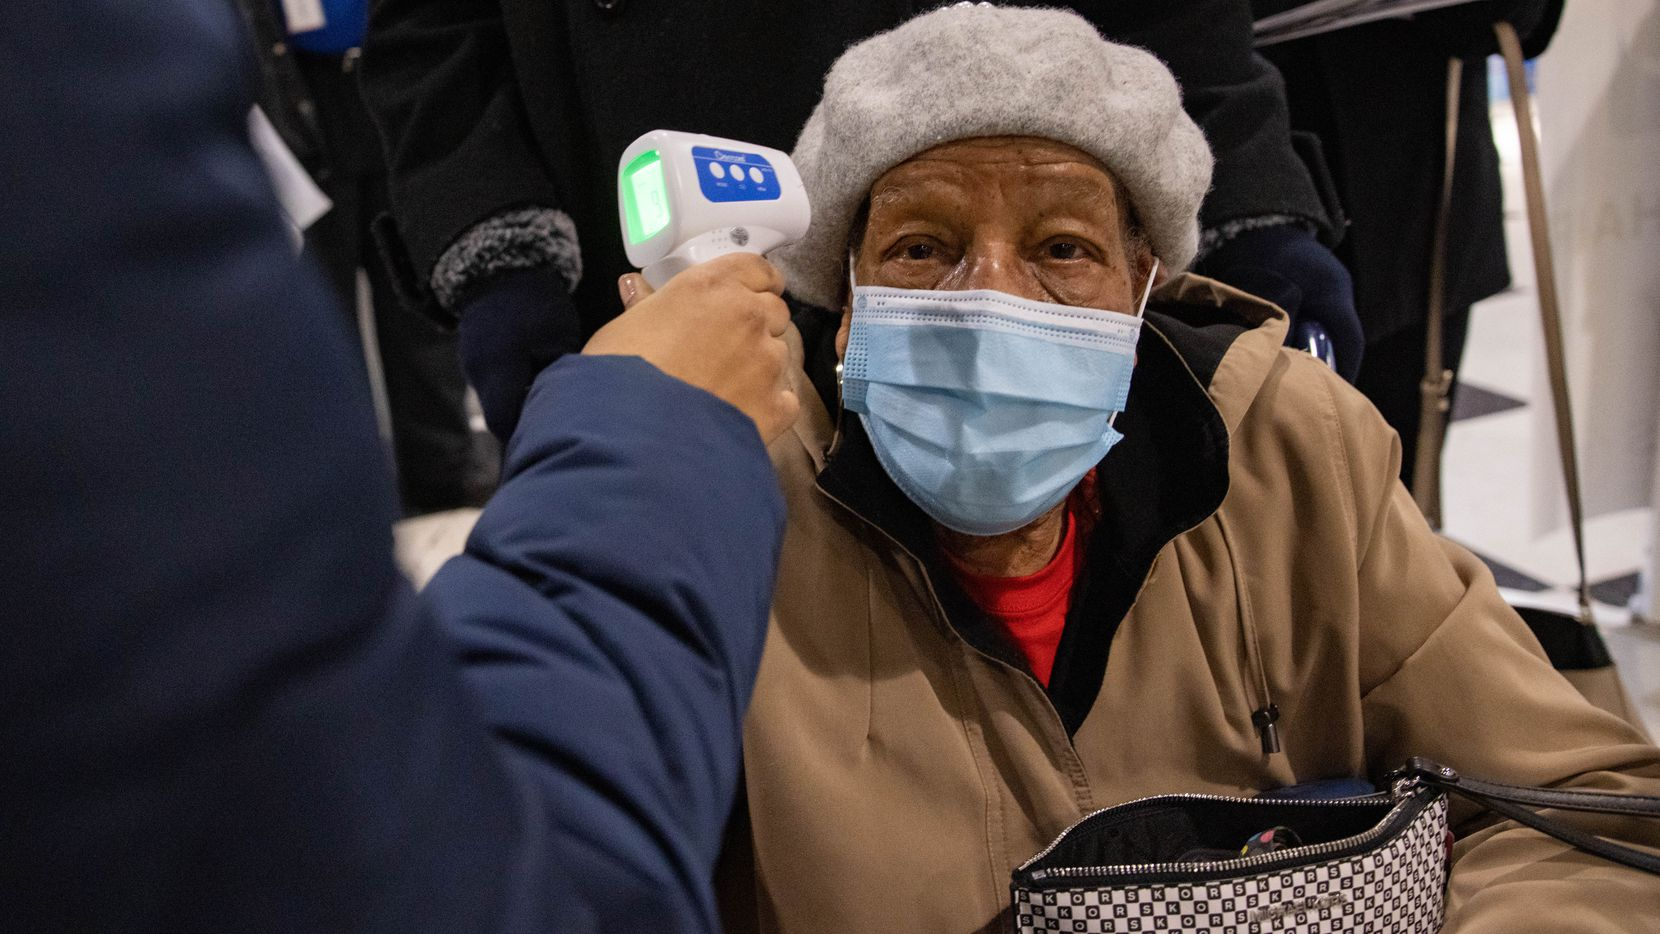 Mae Jackson, 99, has her temperature checked before entering to receive the COVID-19 vaccine at Fair Park in Dallas on Thursday, Jan. 14, 2021.